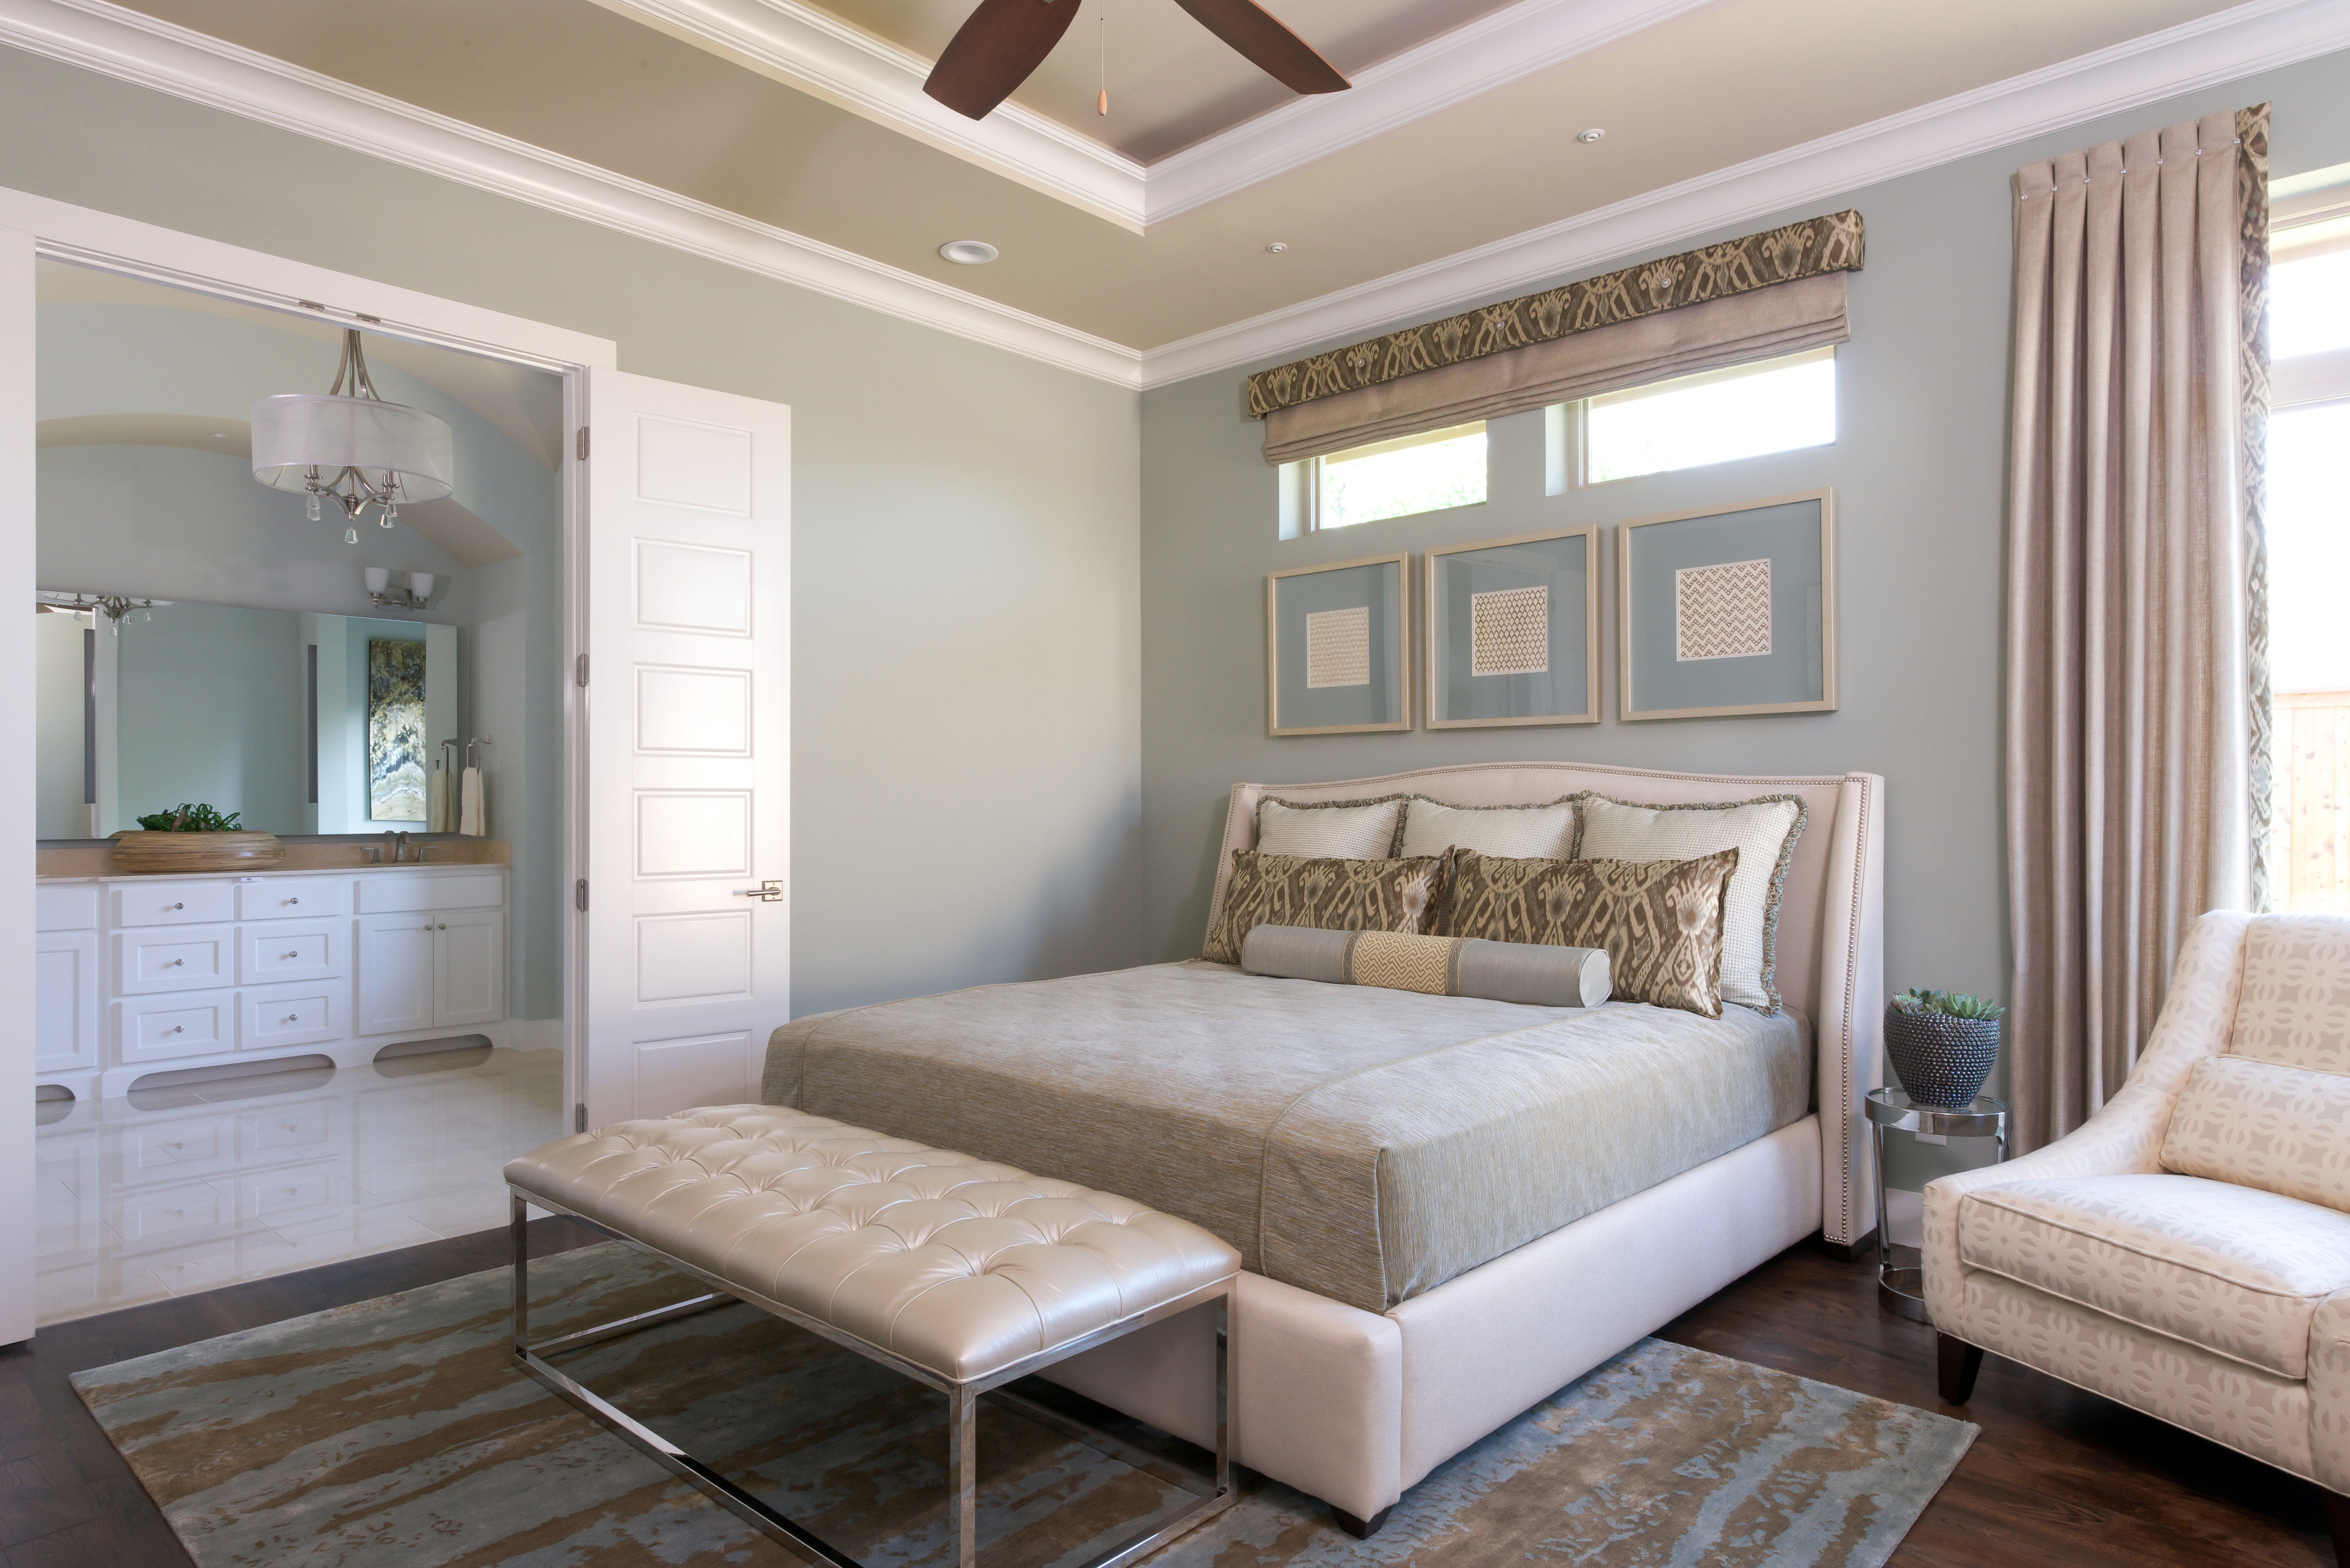 Modern Classic Master Bedroom With Bathroom Interior (Image 22 of 28)